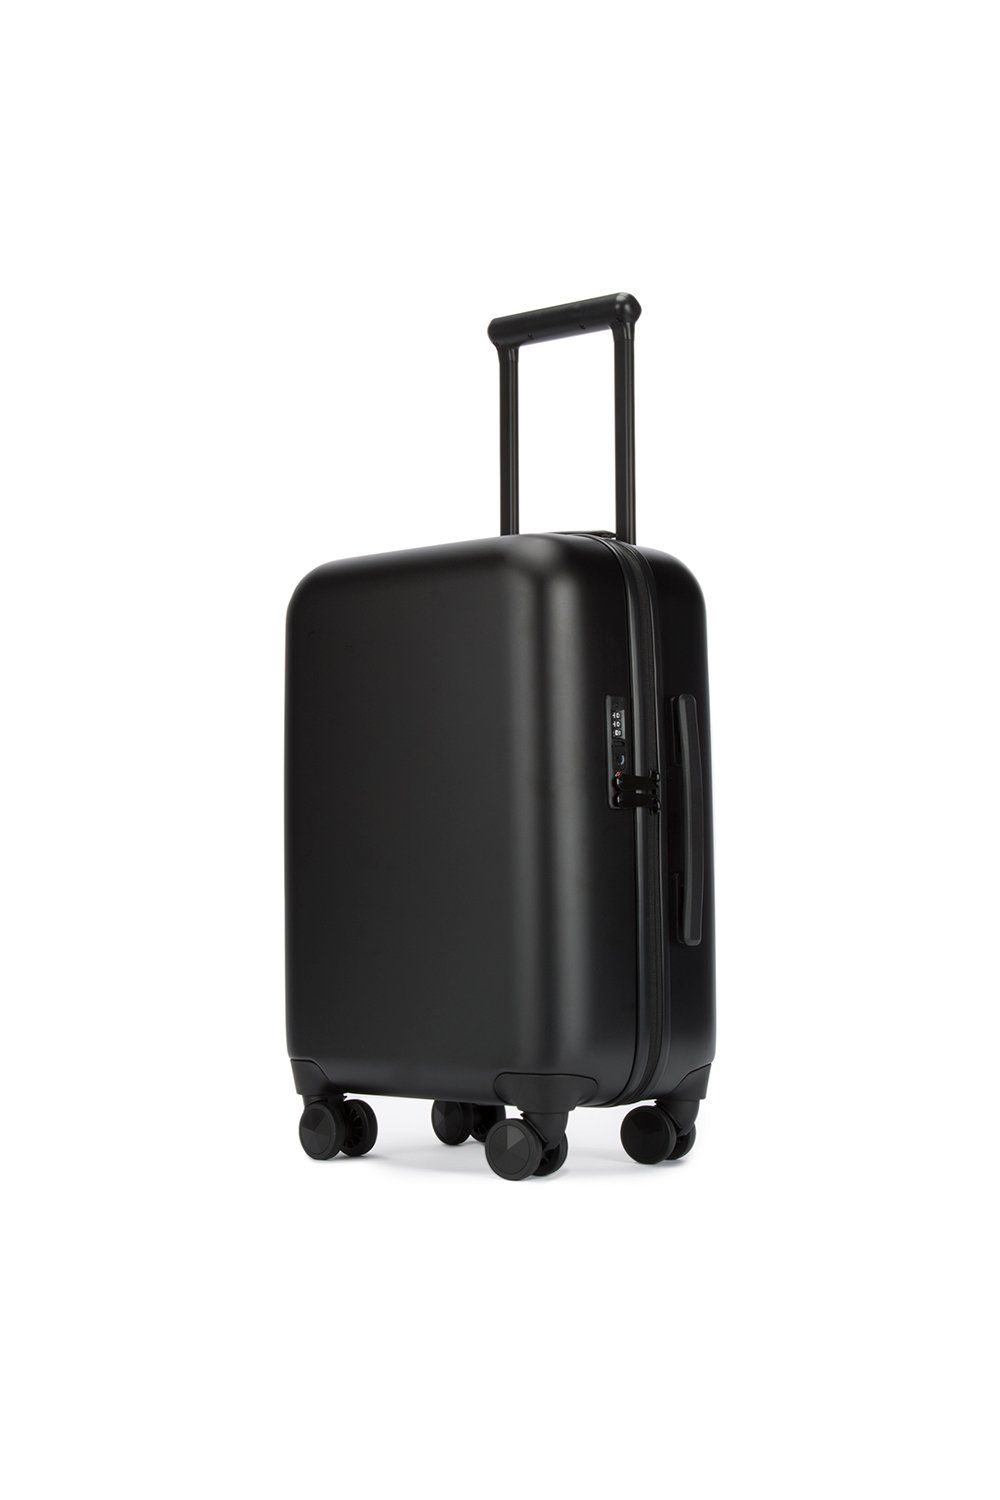 bac033bb6 So Connected Luggage 22